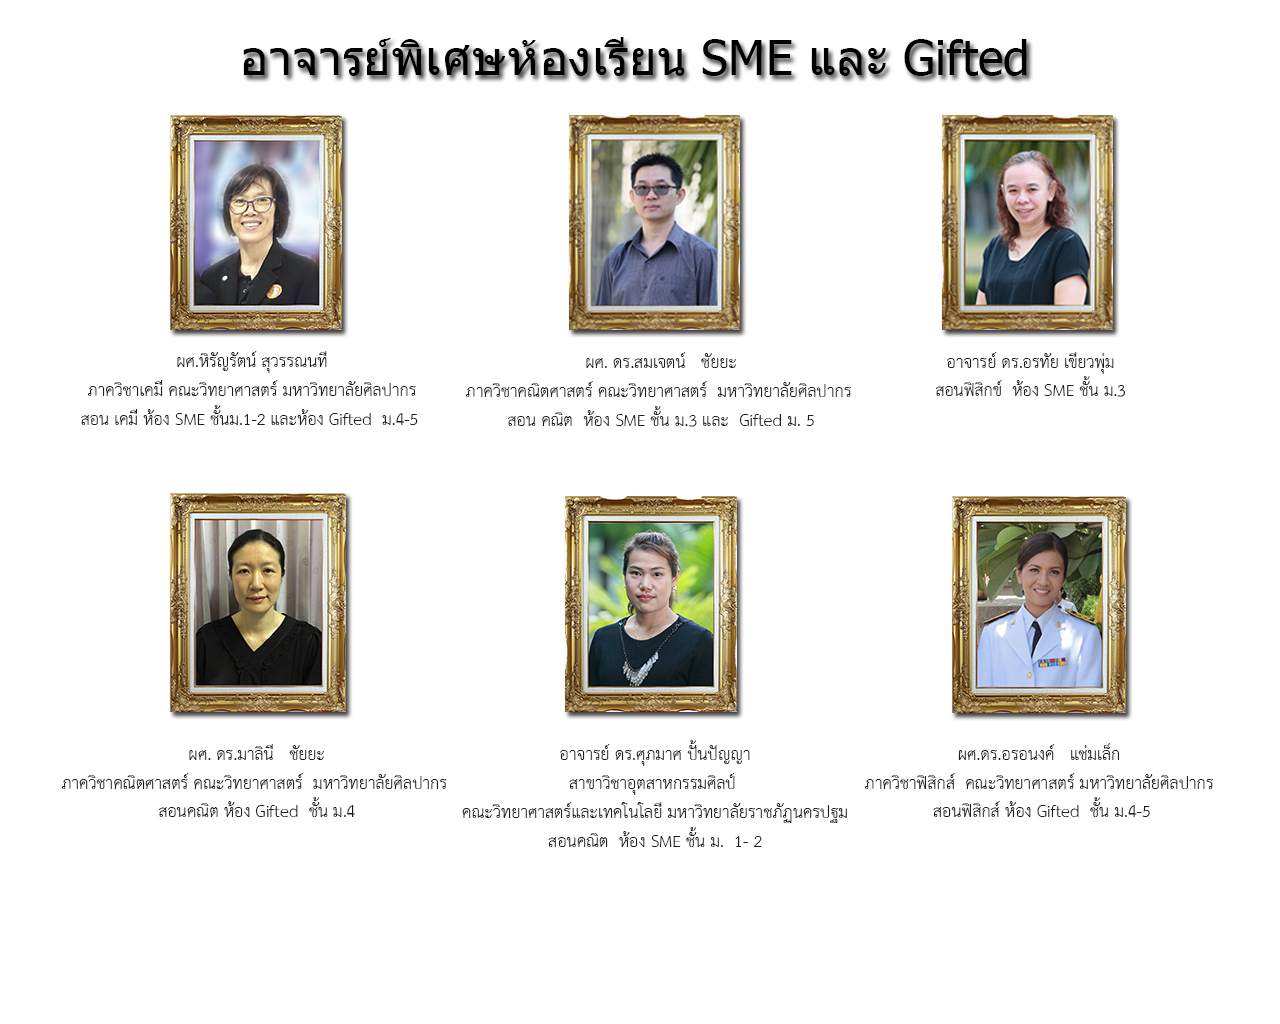 sme-gifted